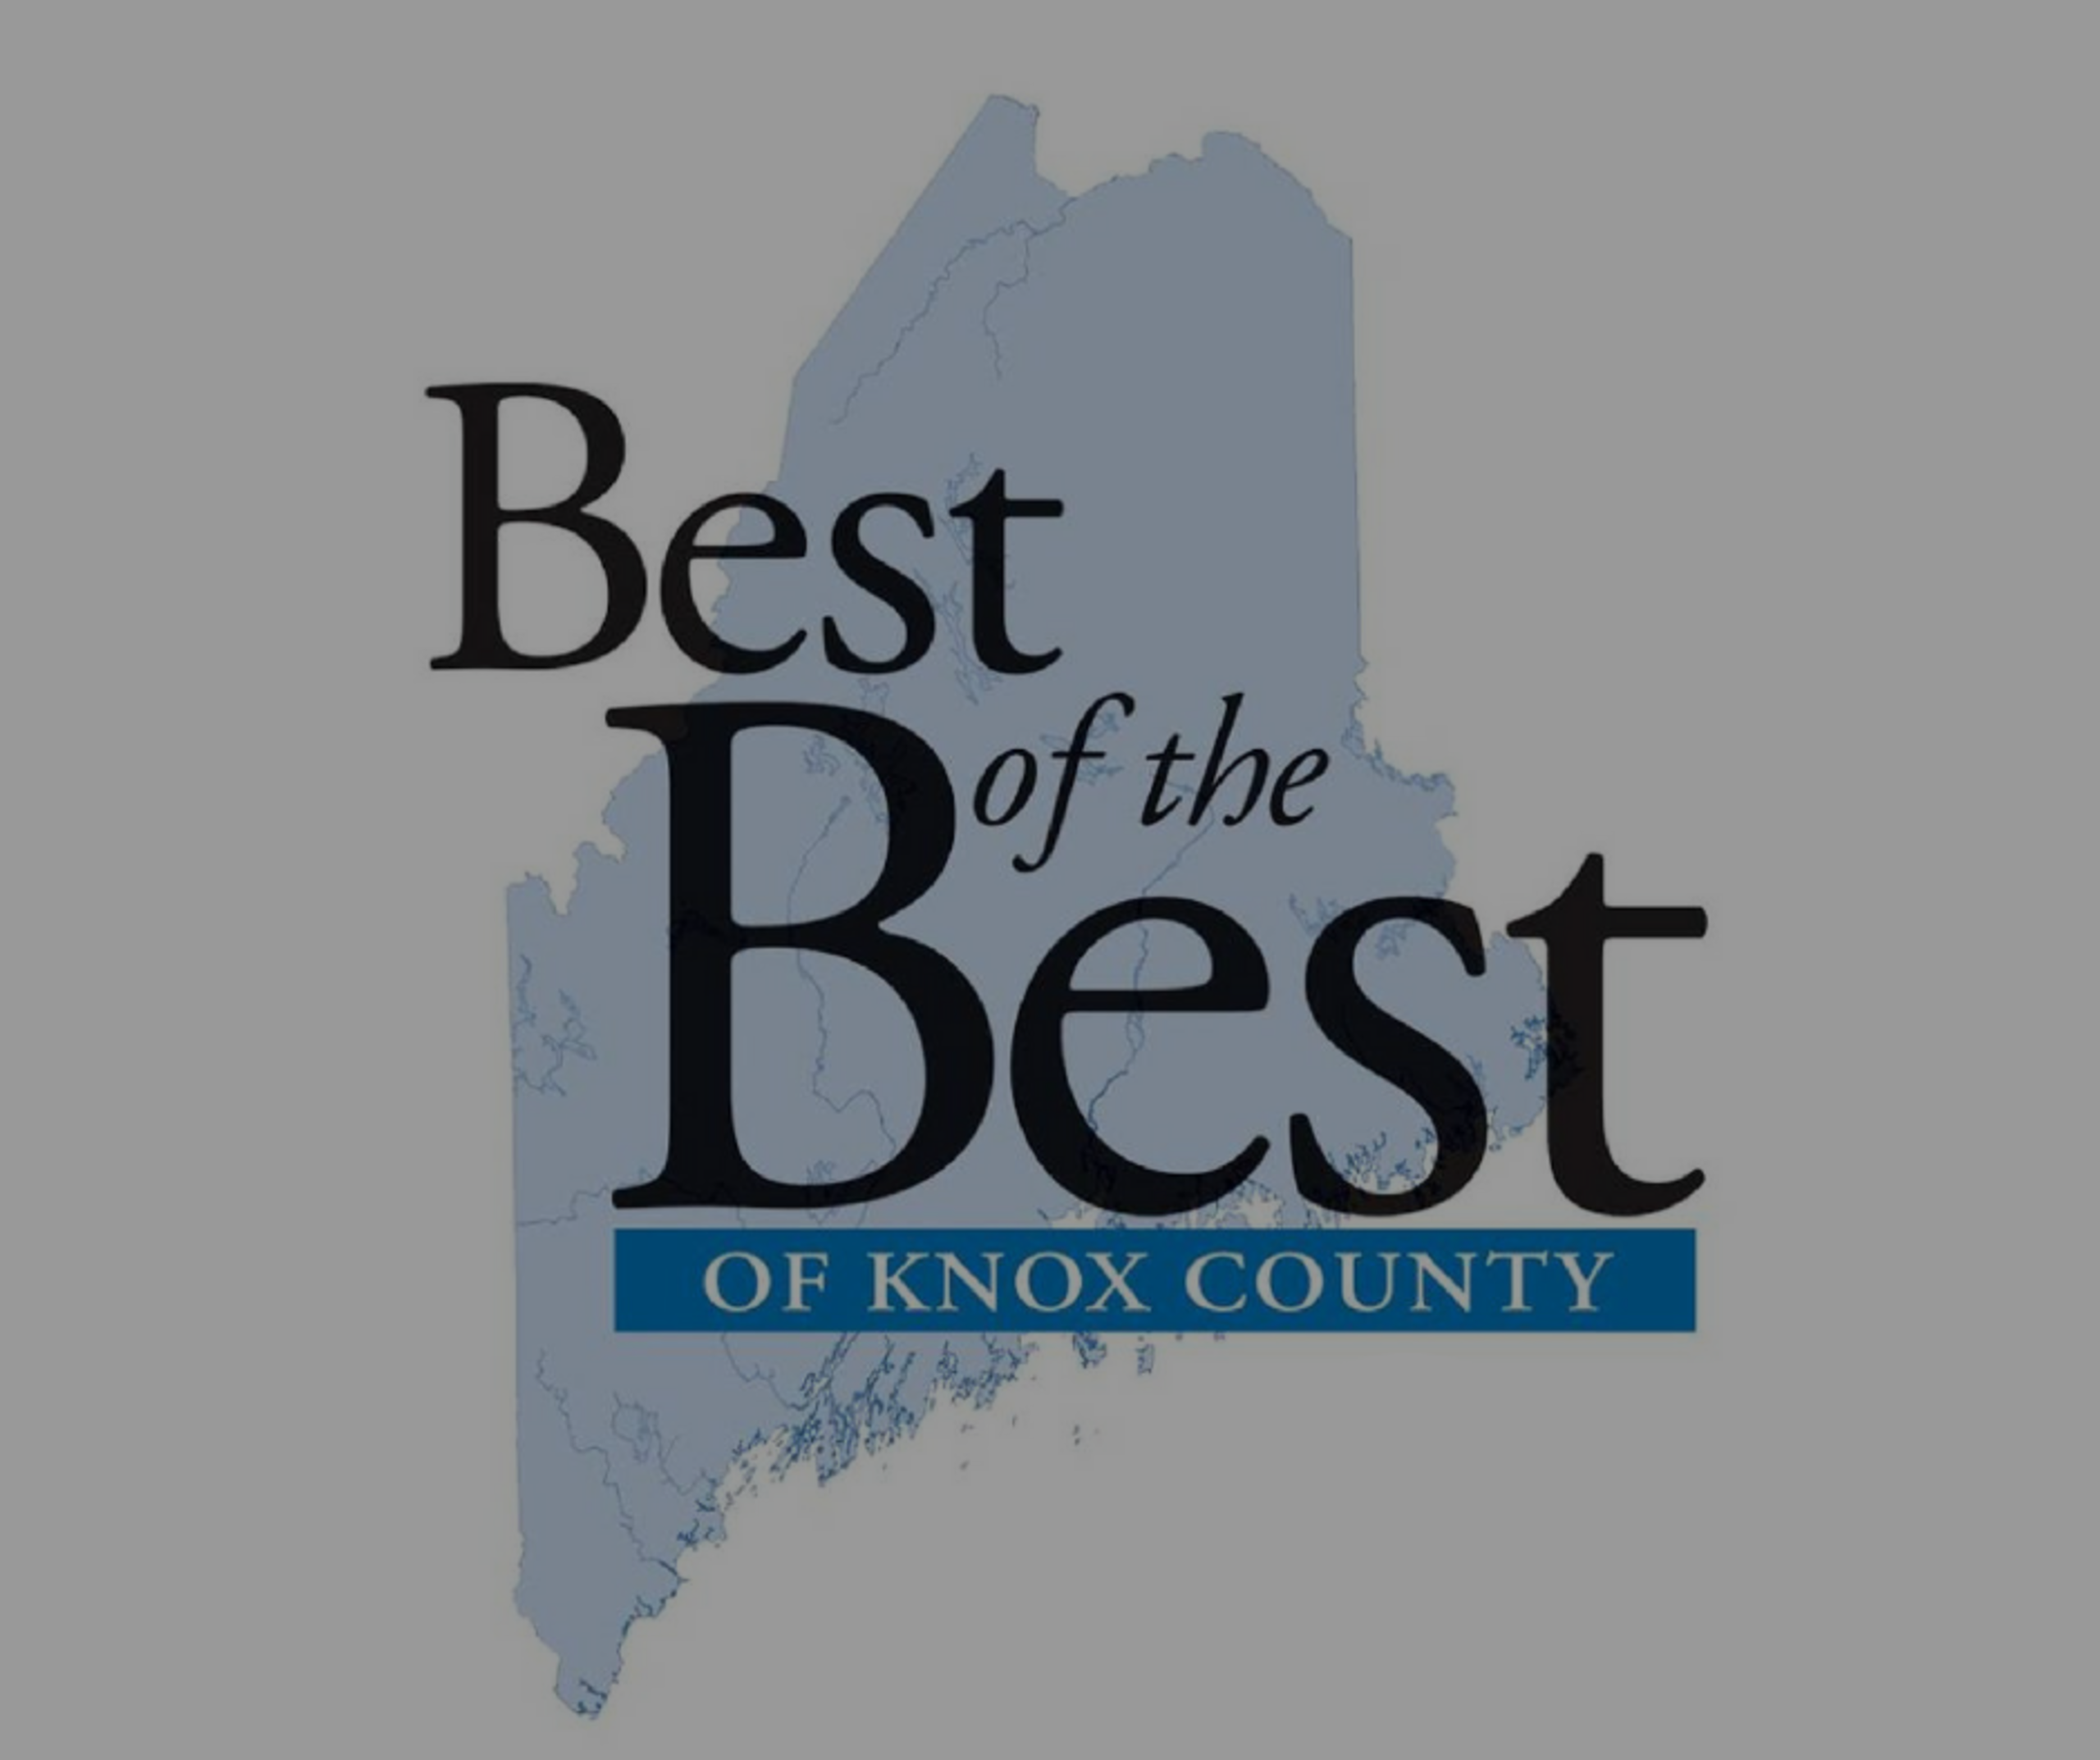 Best of the Best Real Estate Agency in Knox County: Cates RE needs your Vote